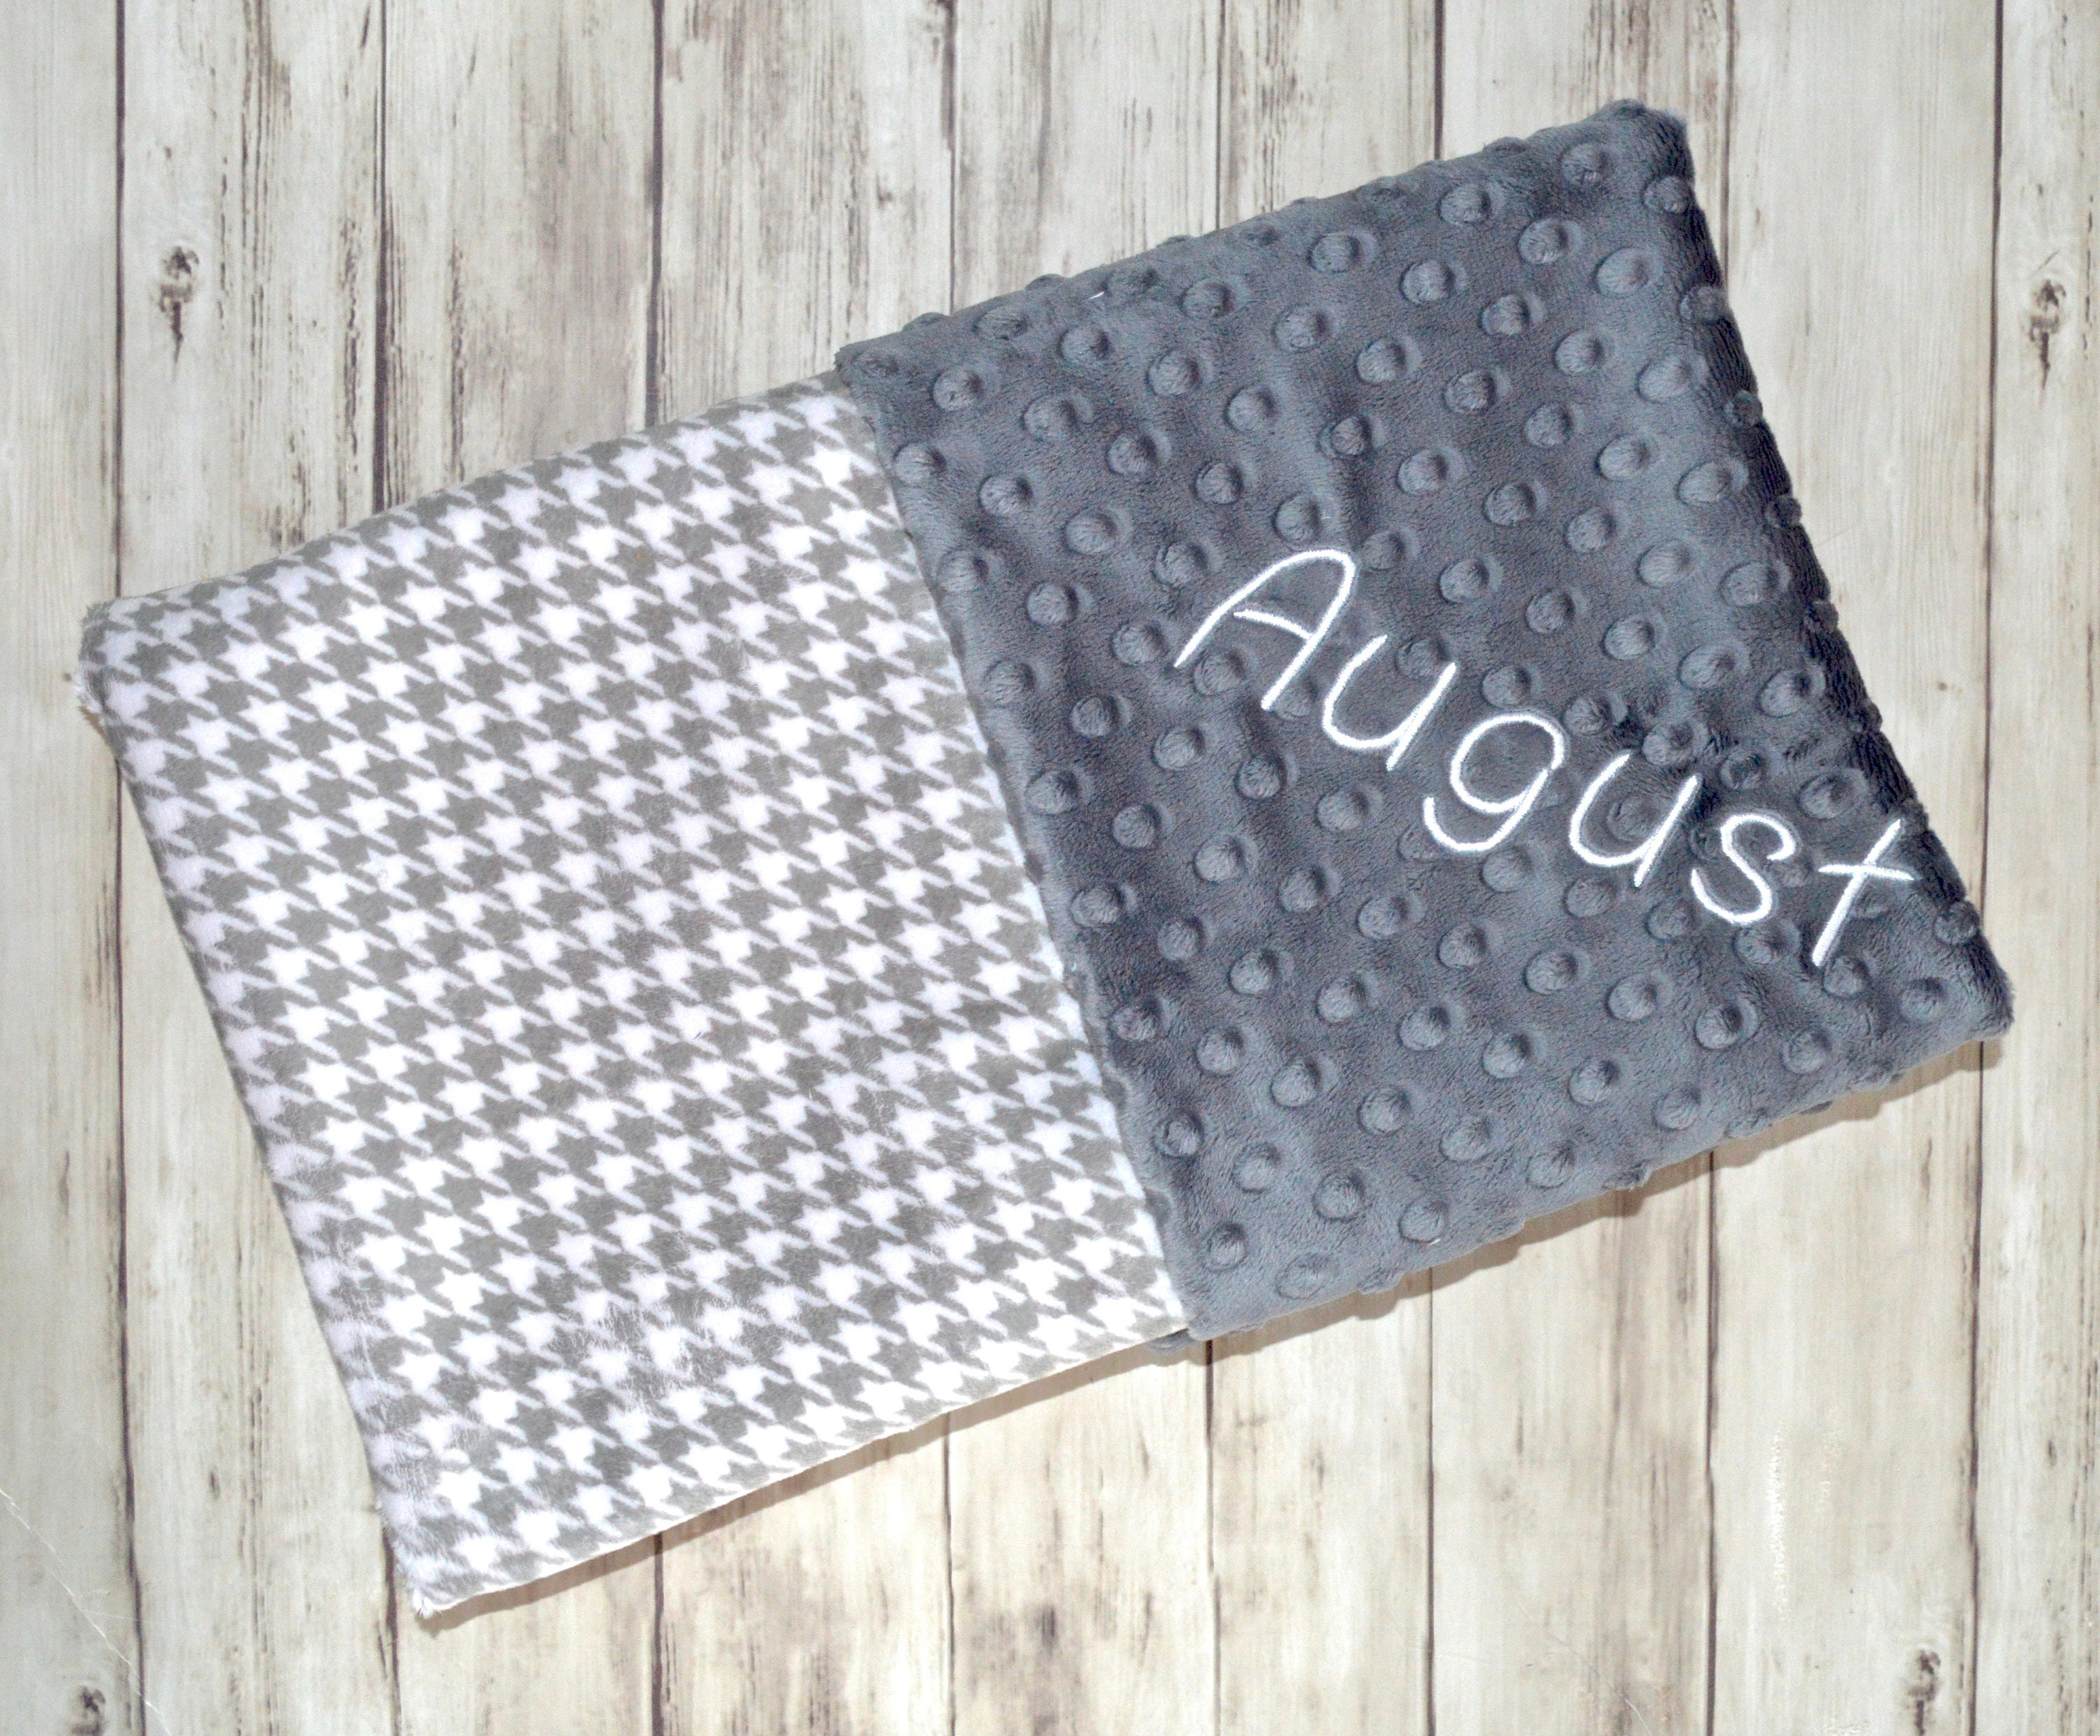 Sale monogrammed minky baby blanket charcoal gray and white sale monogrammed minky baby blanket charcoal gray and white houndstooth personalized baby gift gender neutral unisex blanket with name negle Choice Image